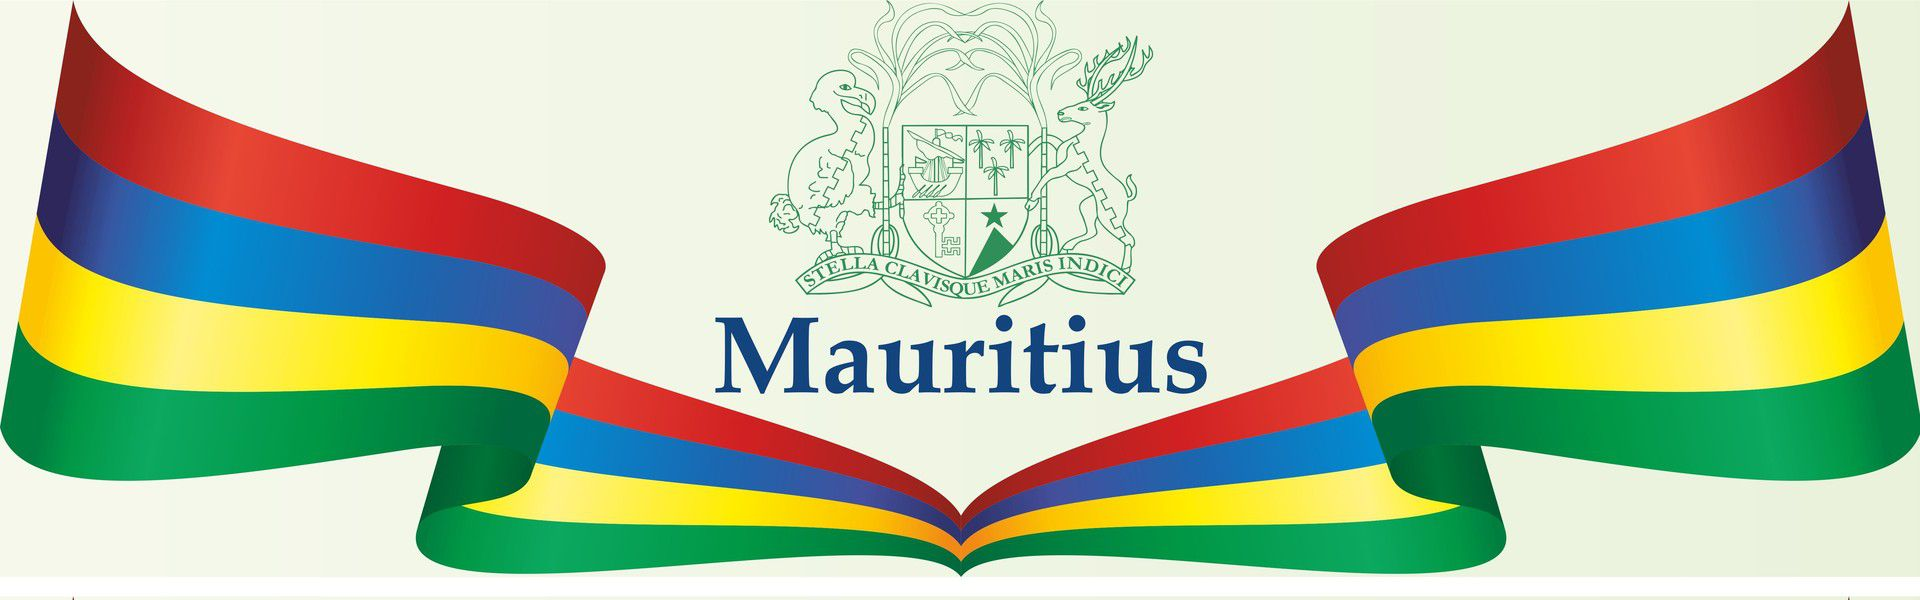 We have described Mauritius to you; its attributes in terms of its landscape, its towns, the activities which can be enjoyed here and prestigious properties which can be bought here. What about its fiscal laws? Is the island as pleasing to the wallet as it is to the eyes and heart? Here is an overview of the fiscal laws of this beautiful island. Spoiler alert: they are very advantageous!